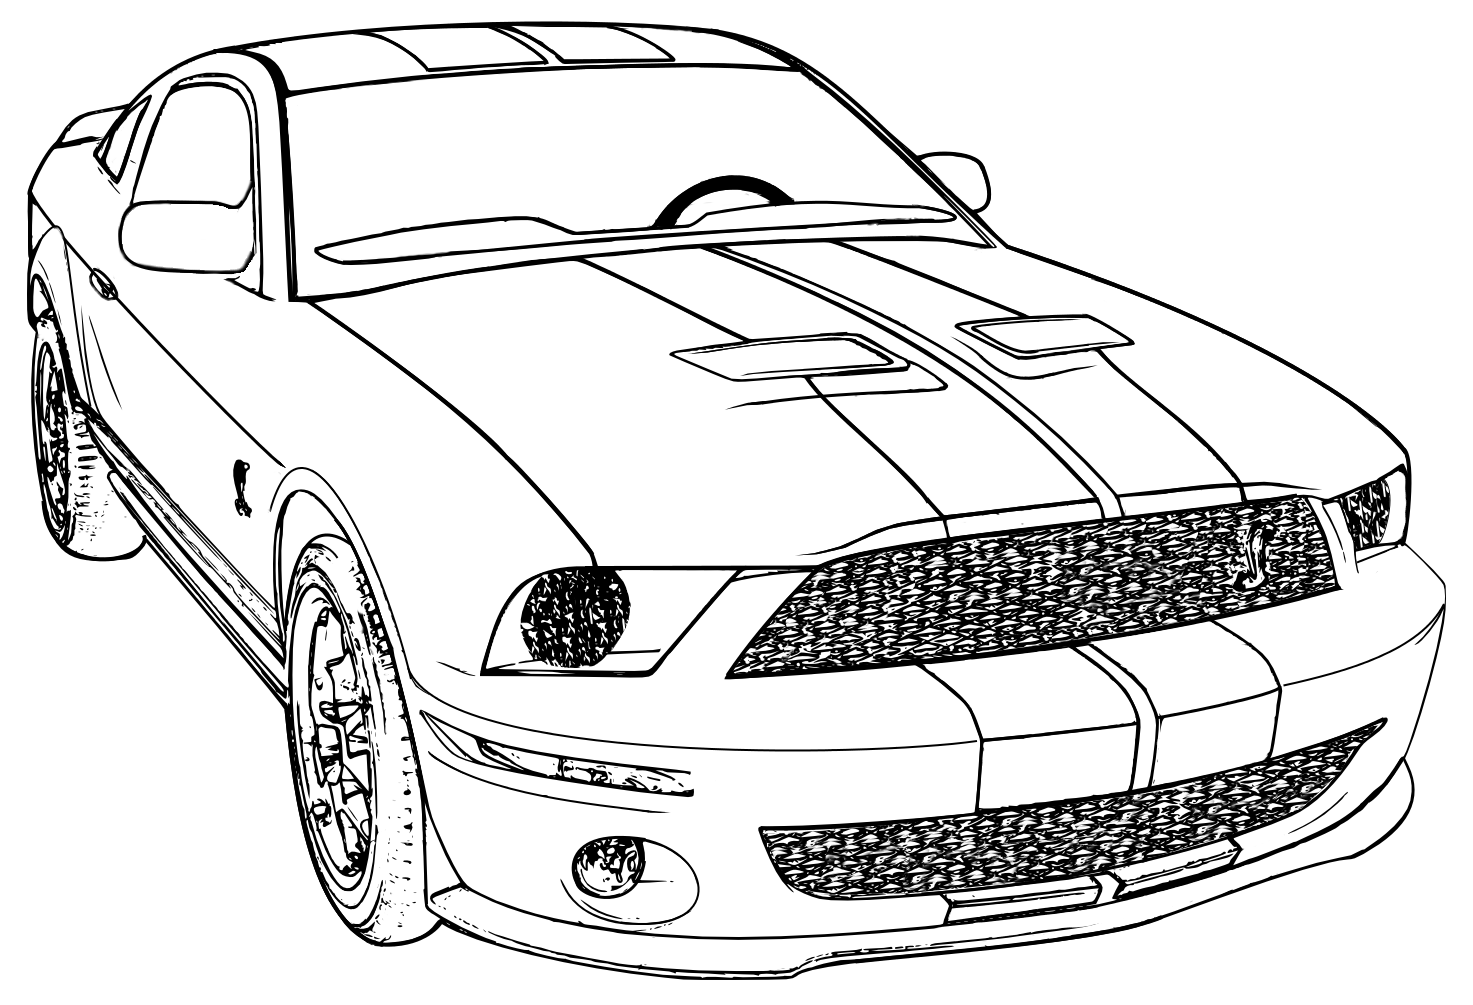 cars for coloring 4 disney cars free printable coloring pages for coloring cars